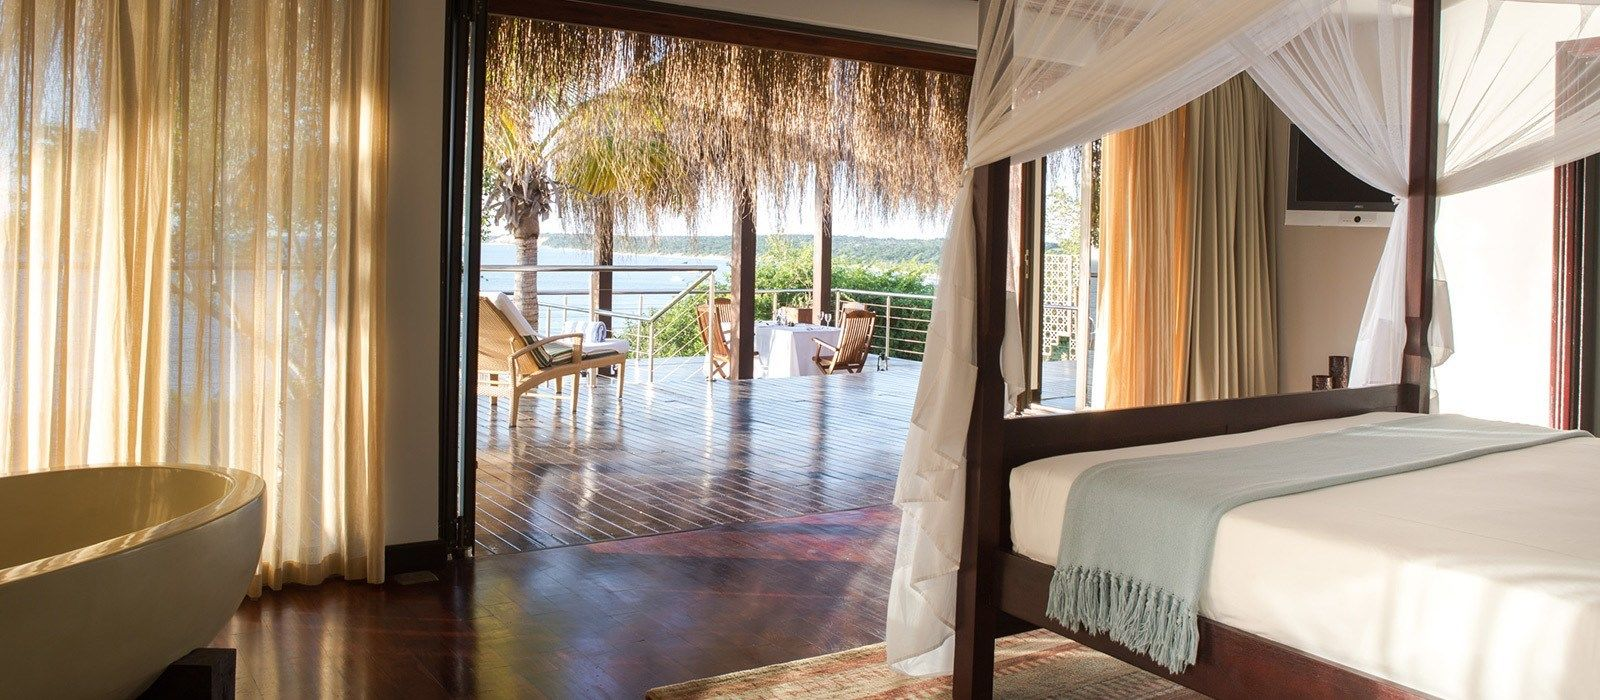 Hotel Anantara Bazaruto Resort & Spa Mozambique